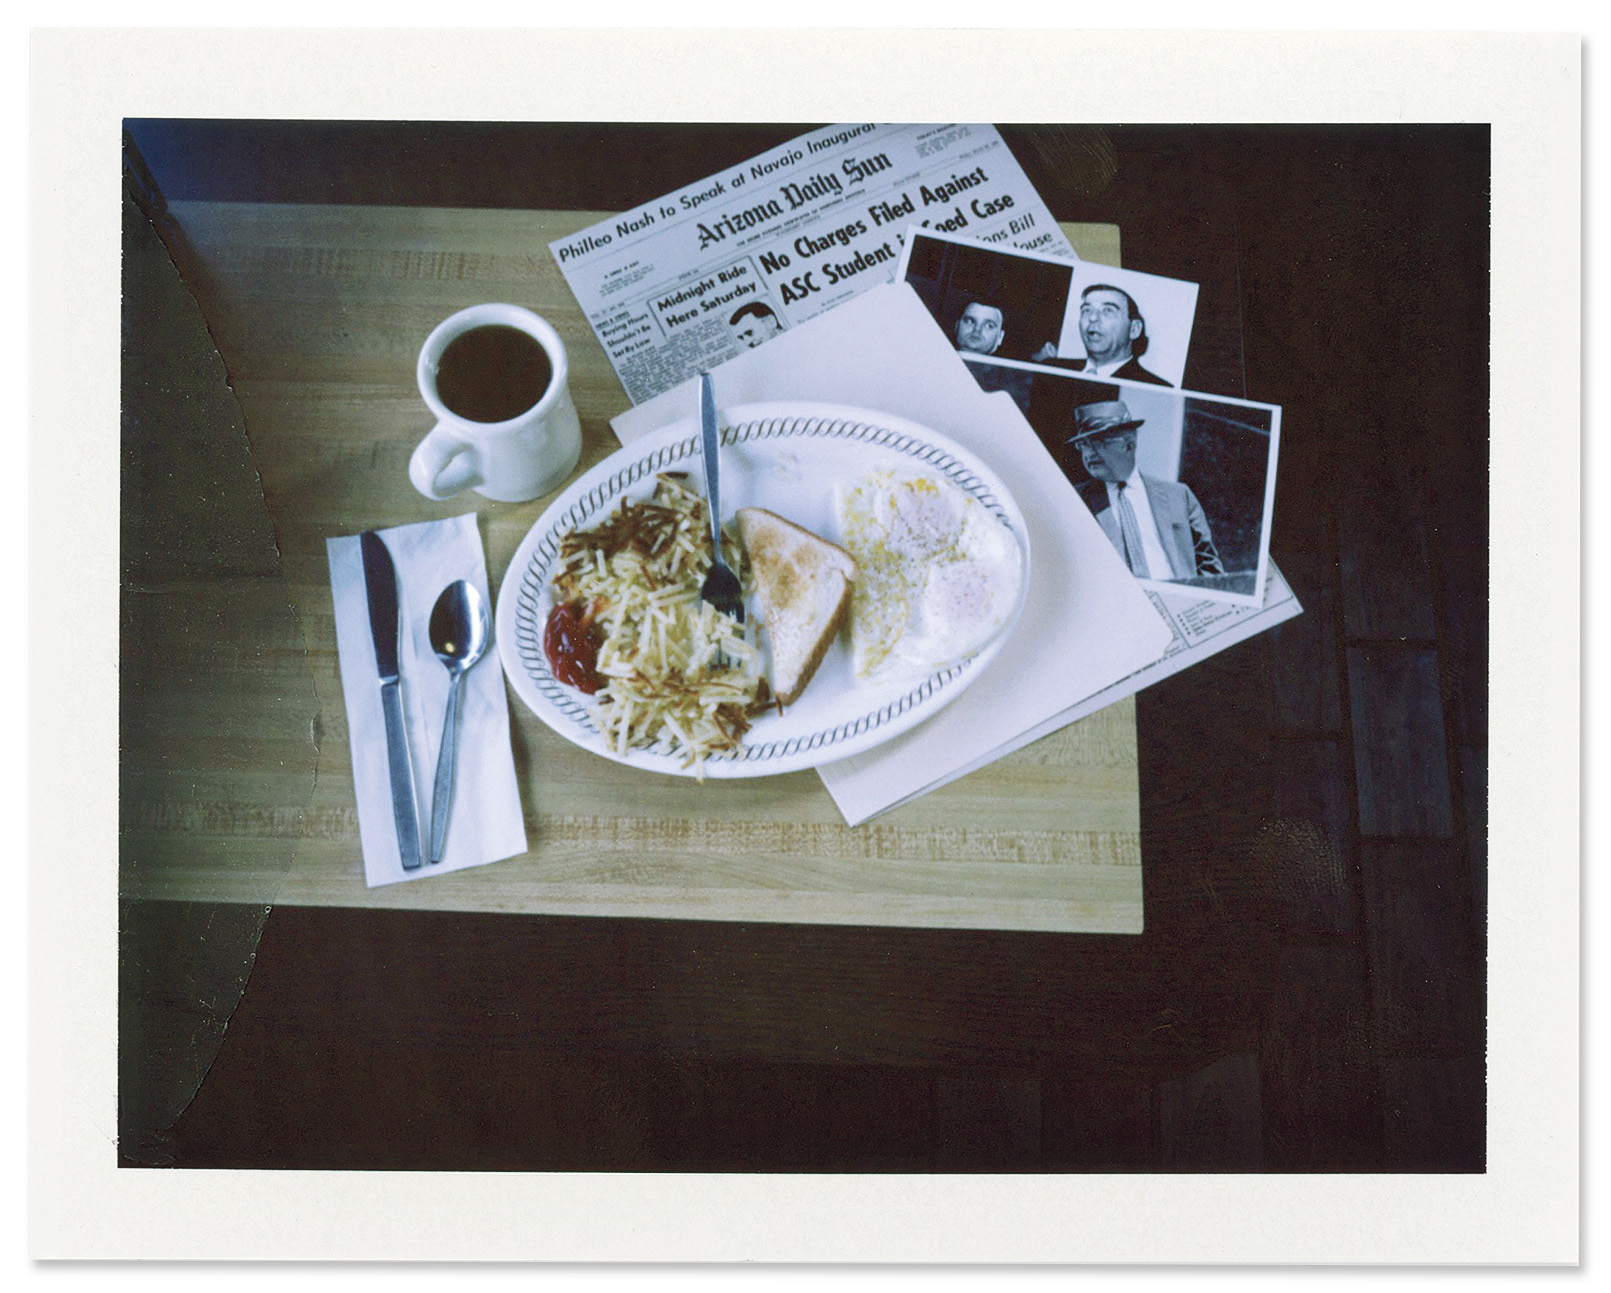 Old news stories and photographs of Billy James Hargis and Edwin Walker are laid out on a table at a Waffle House in Pelham, Alabama.